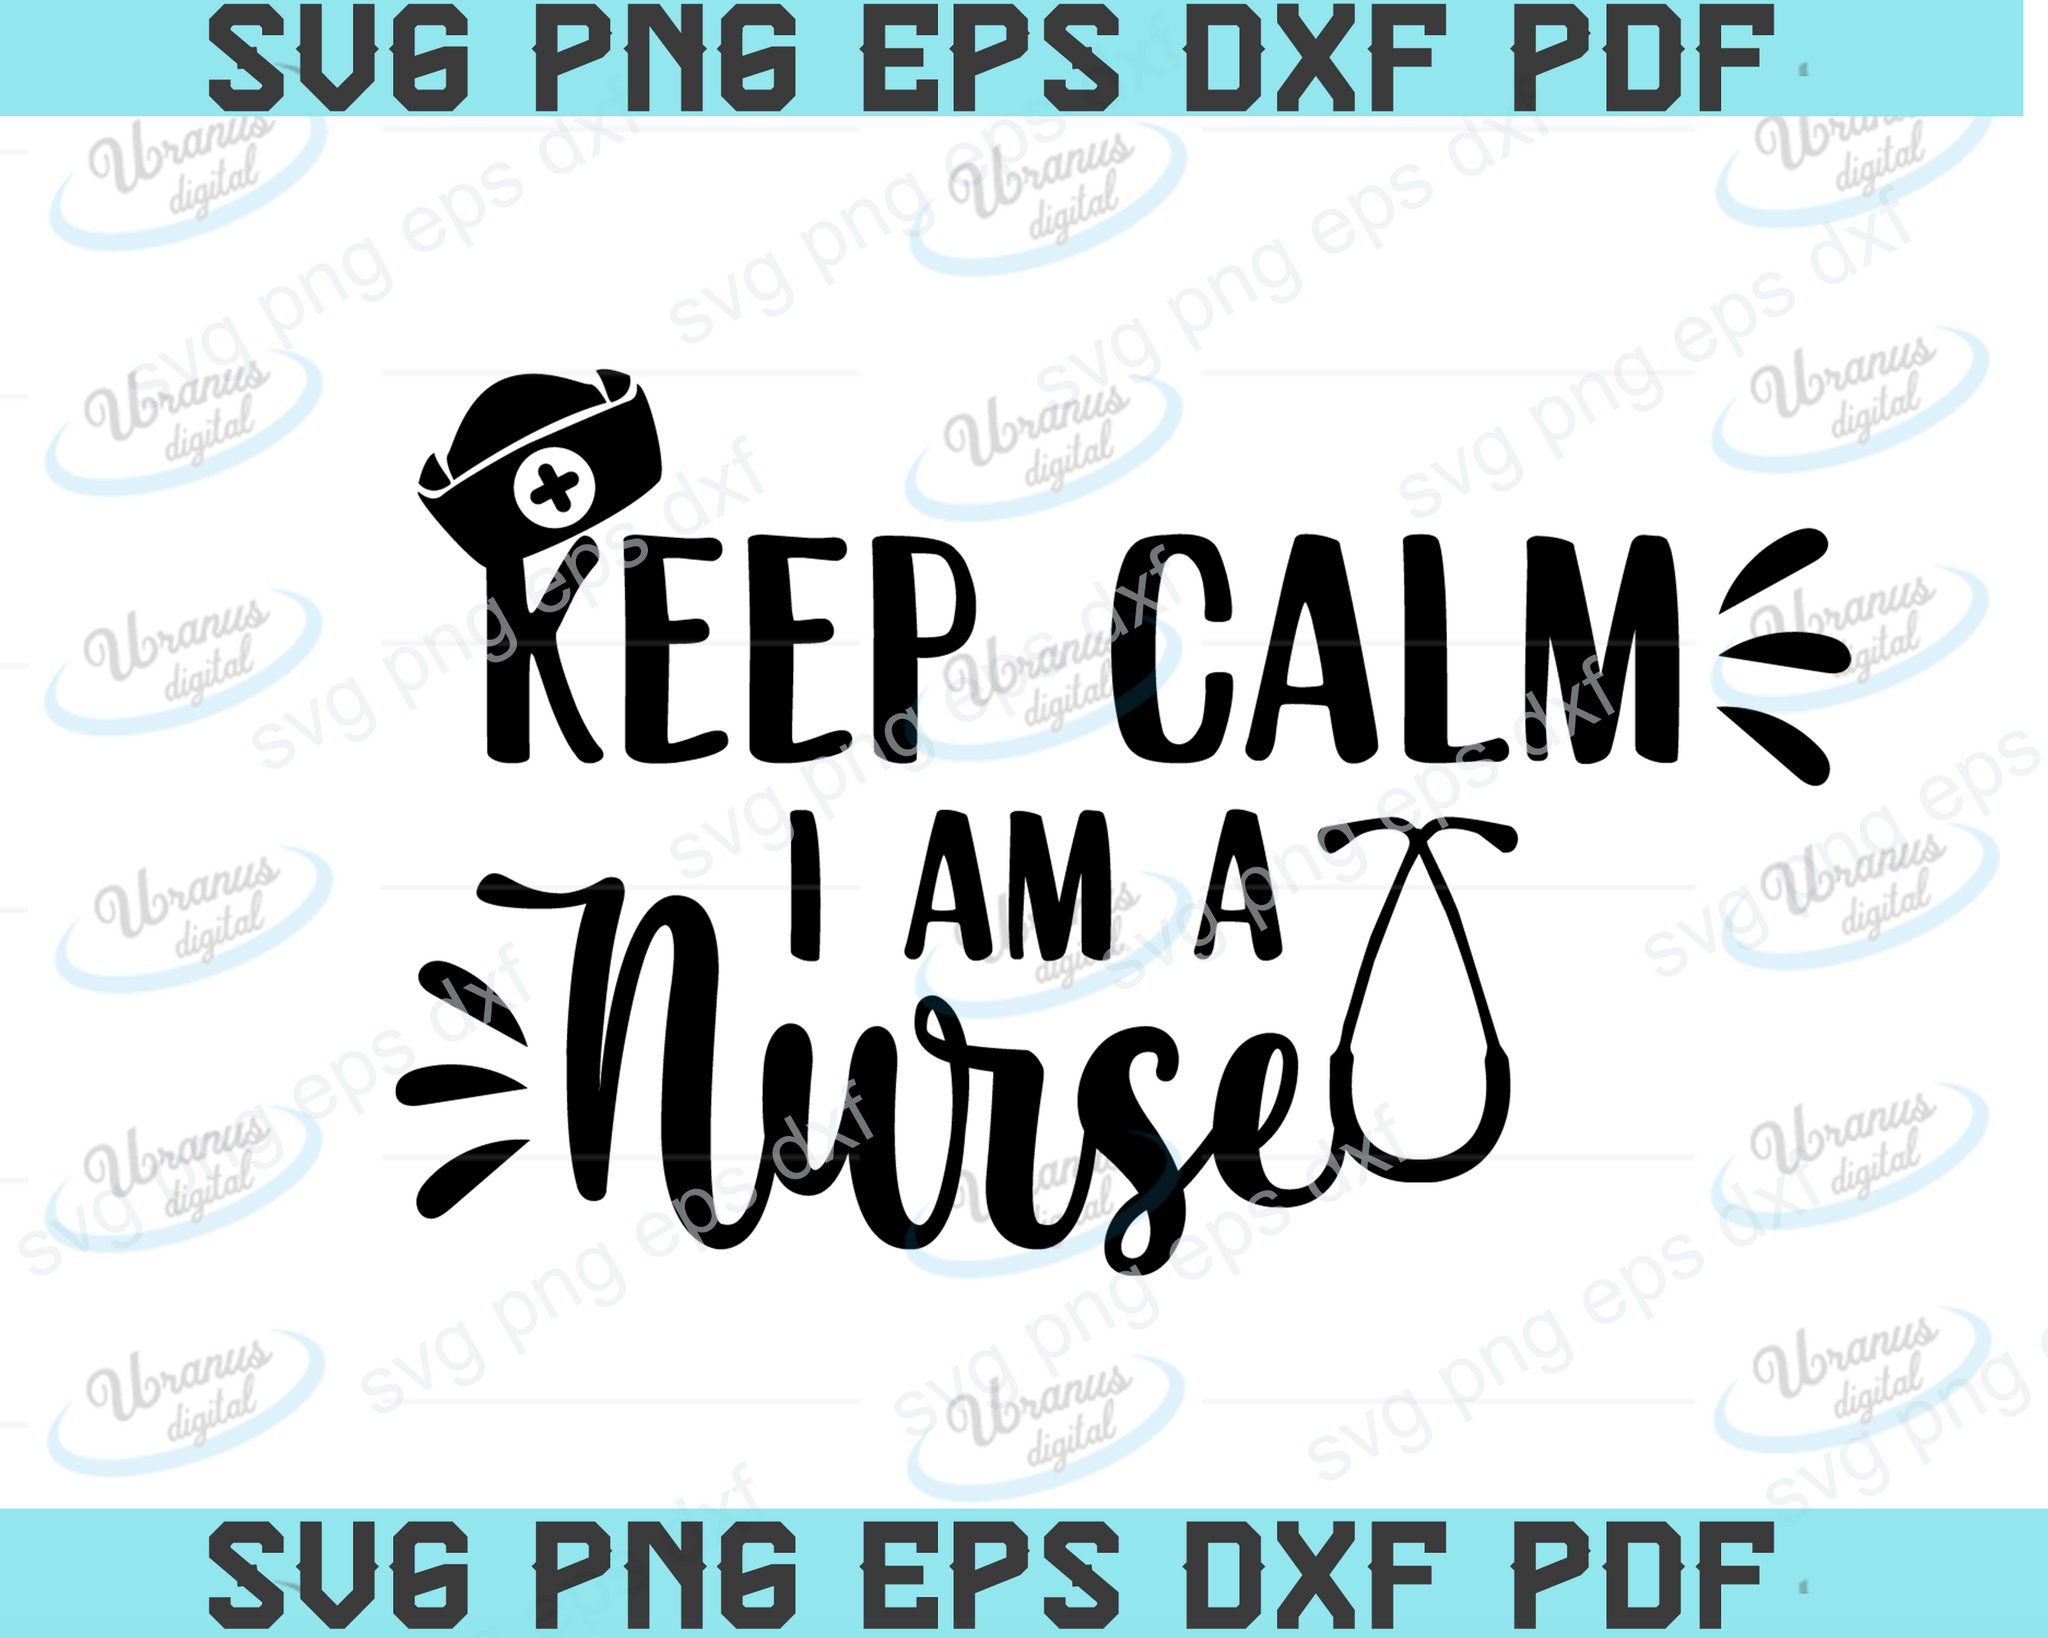 Keep calm i am a nurse SVG,SVG Files For Silhouette, Files For Cricut, SVG, DXF, EPS, PNG Instant Download